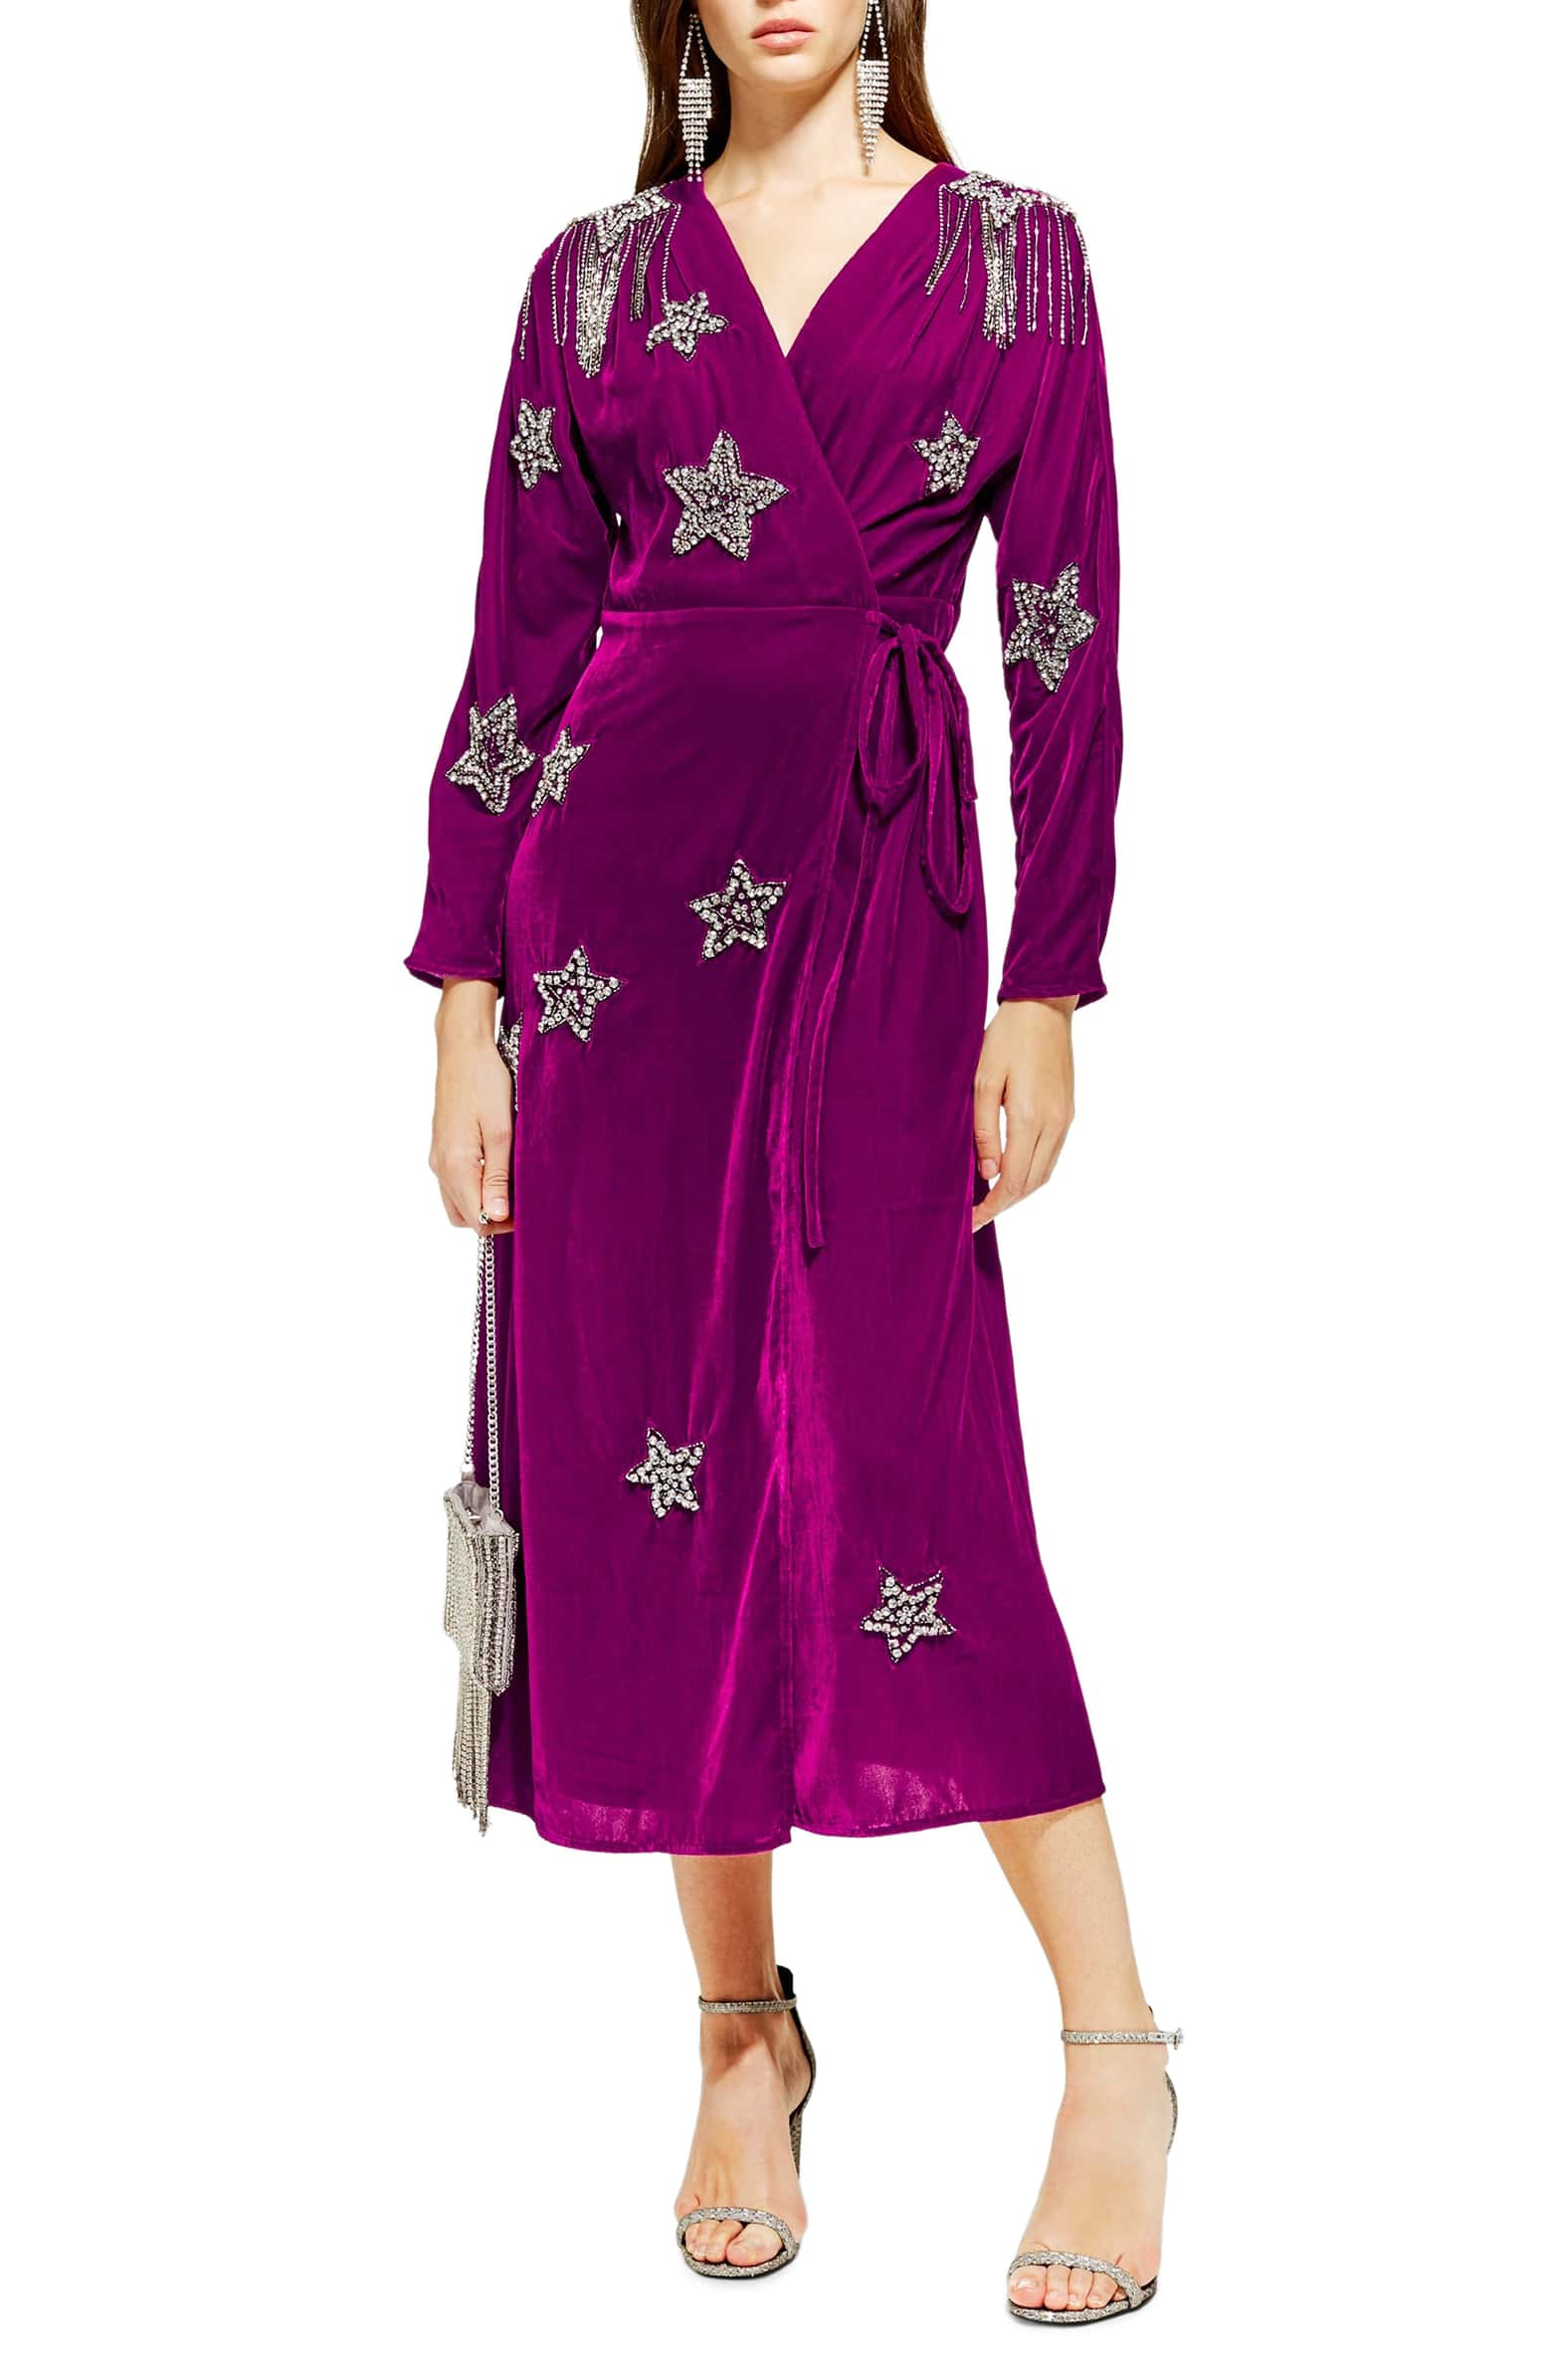 Embroidered Wrap Dress - $190